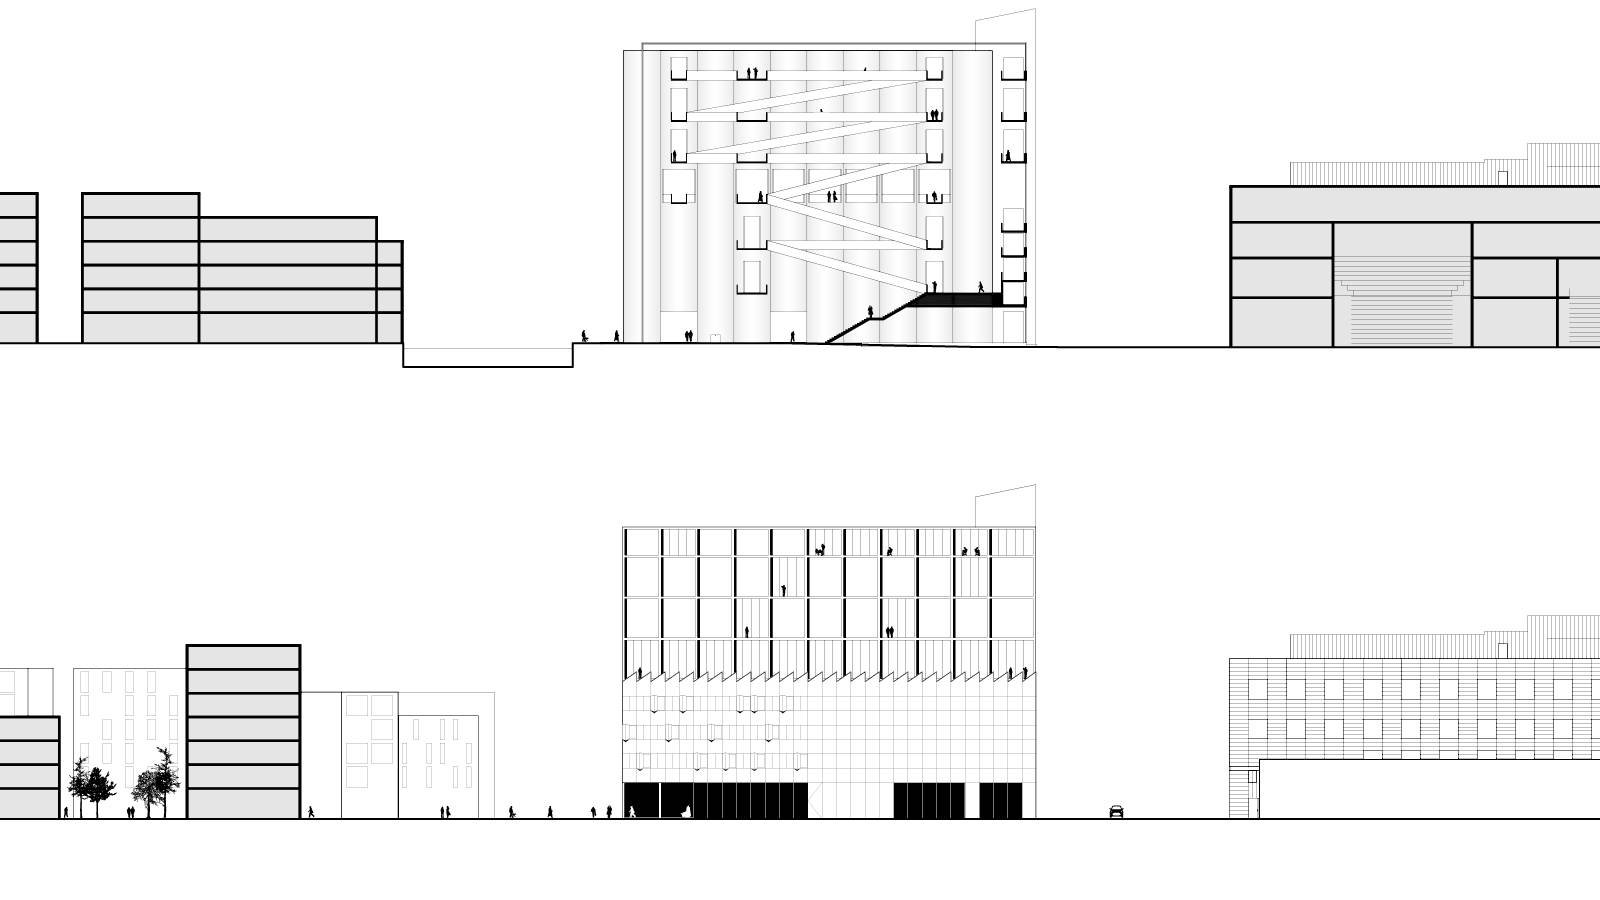 SECTIONS ALONG REAR OF SITE - ART SILO AND ART SCHOOL - Kunstsilo - SPOL Architects